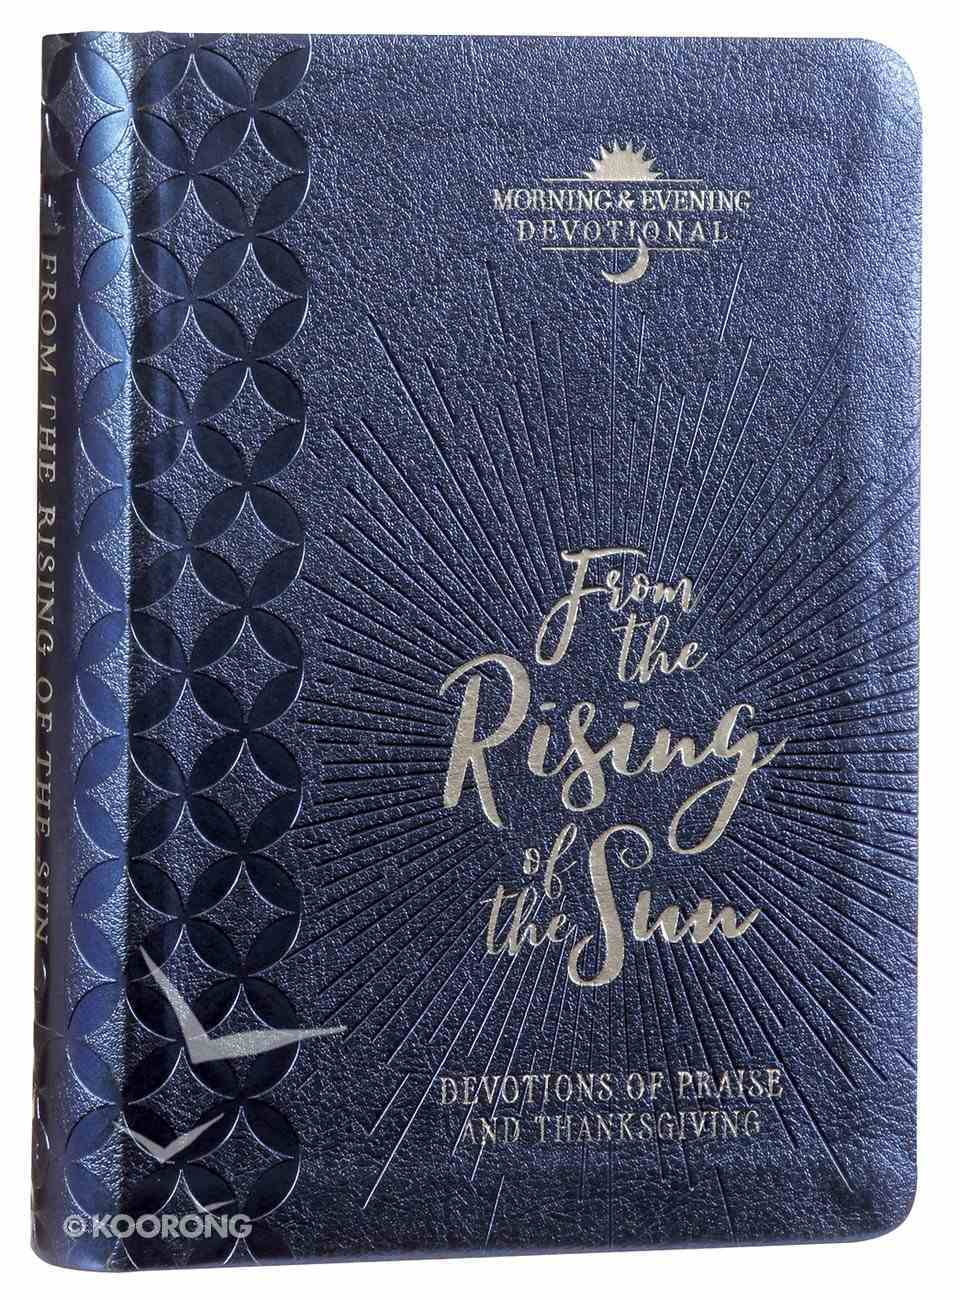 From the Rising of the Sun: Devotions of Praise and Thanksgiving - Morning and Evening Devotional Imitation Leather